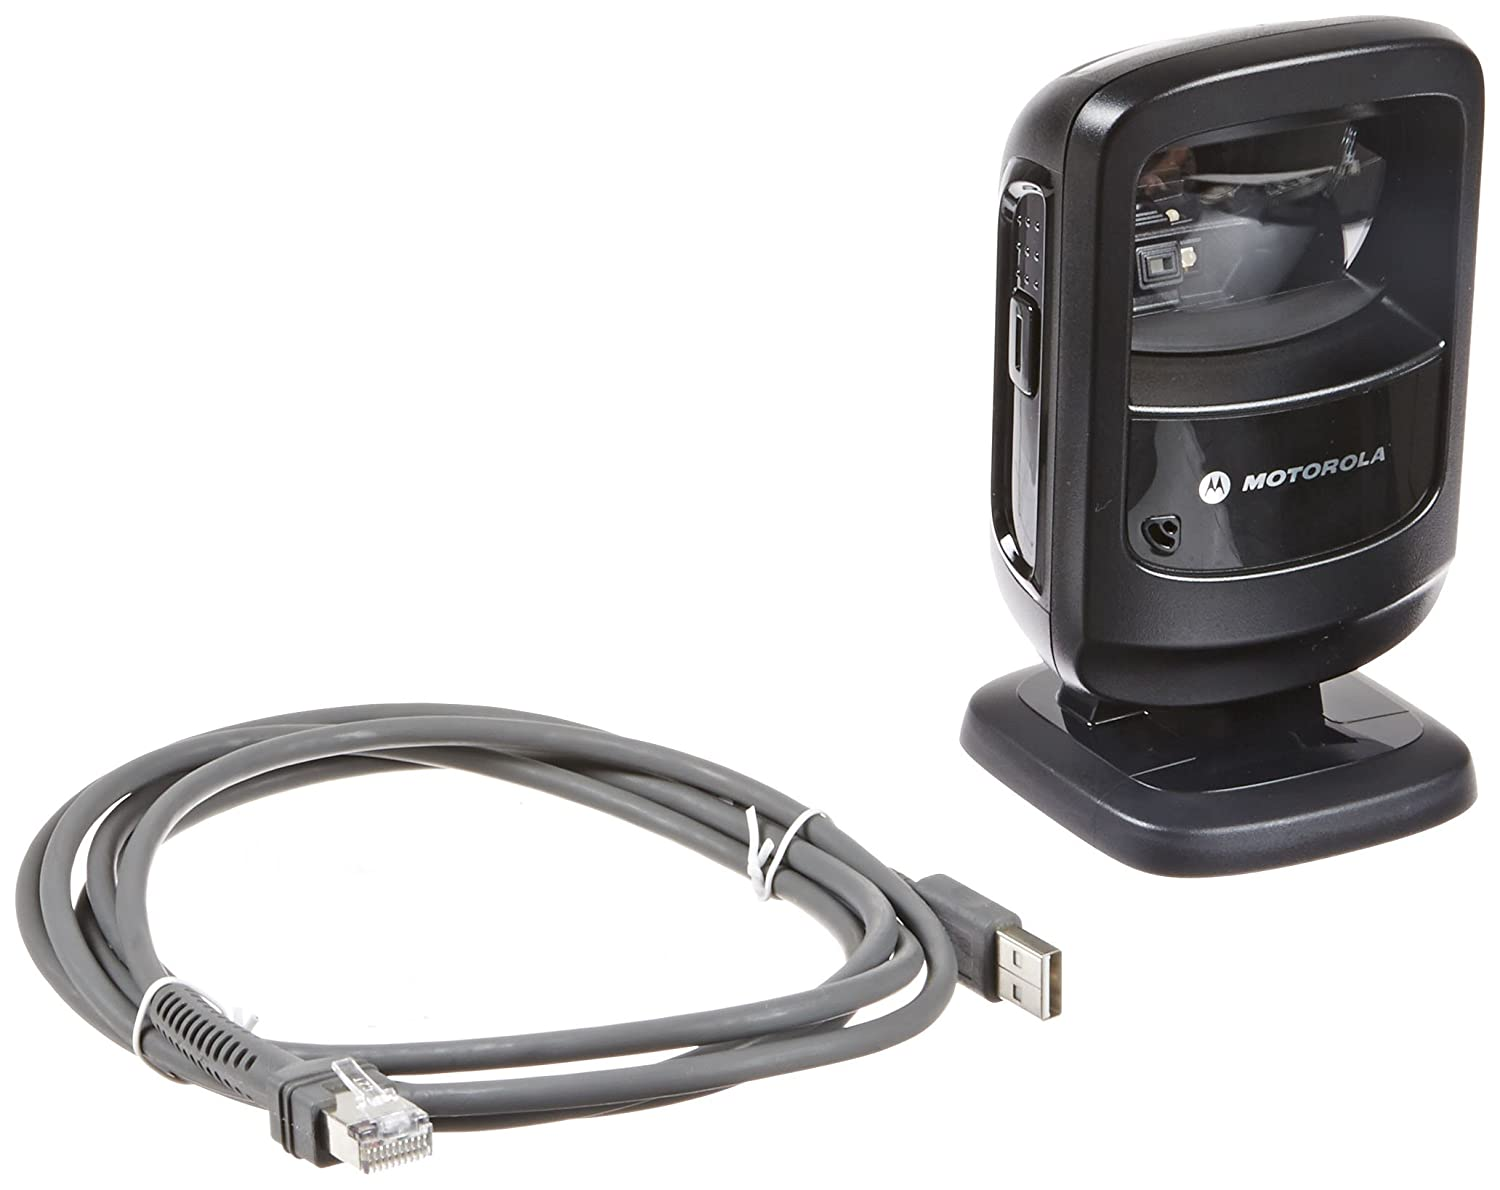 Symbol DS9208 Corded Omnidirectional LED Desktop Barcode Reader with USB Host Interface and 7' Cable, 5V DC, Black by Motorola   B00EUN1LTW